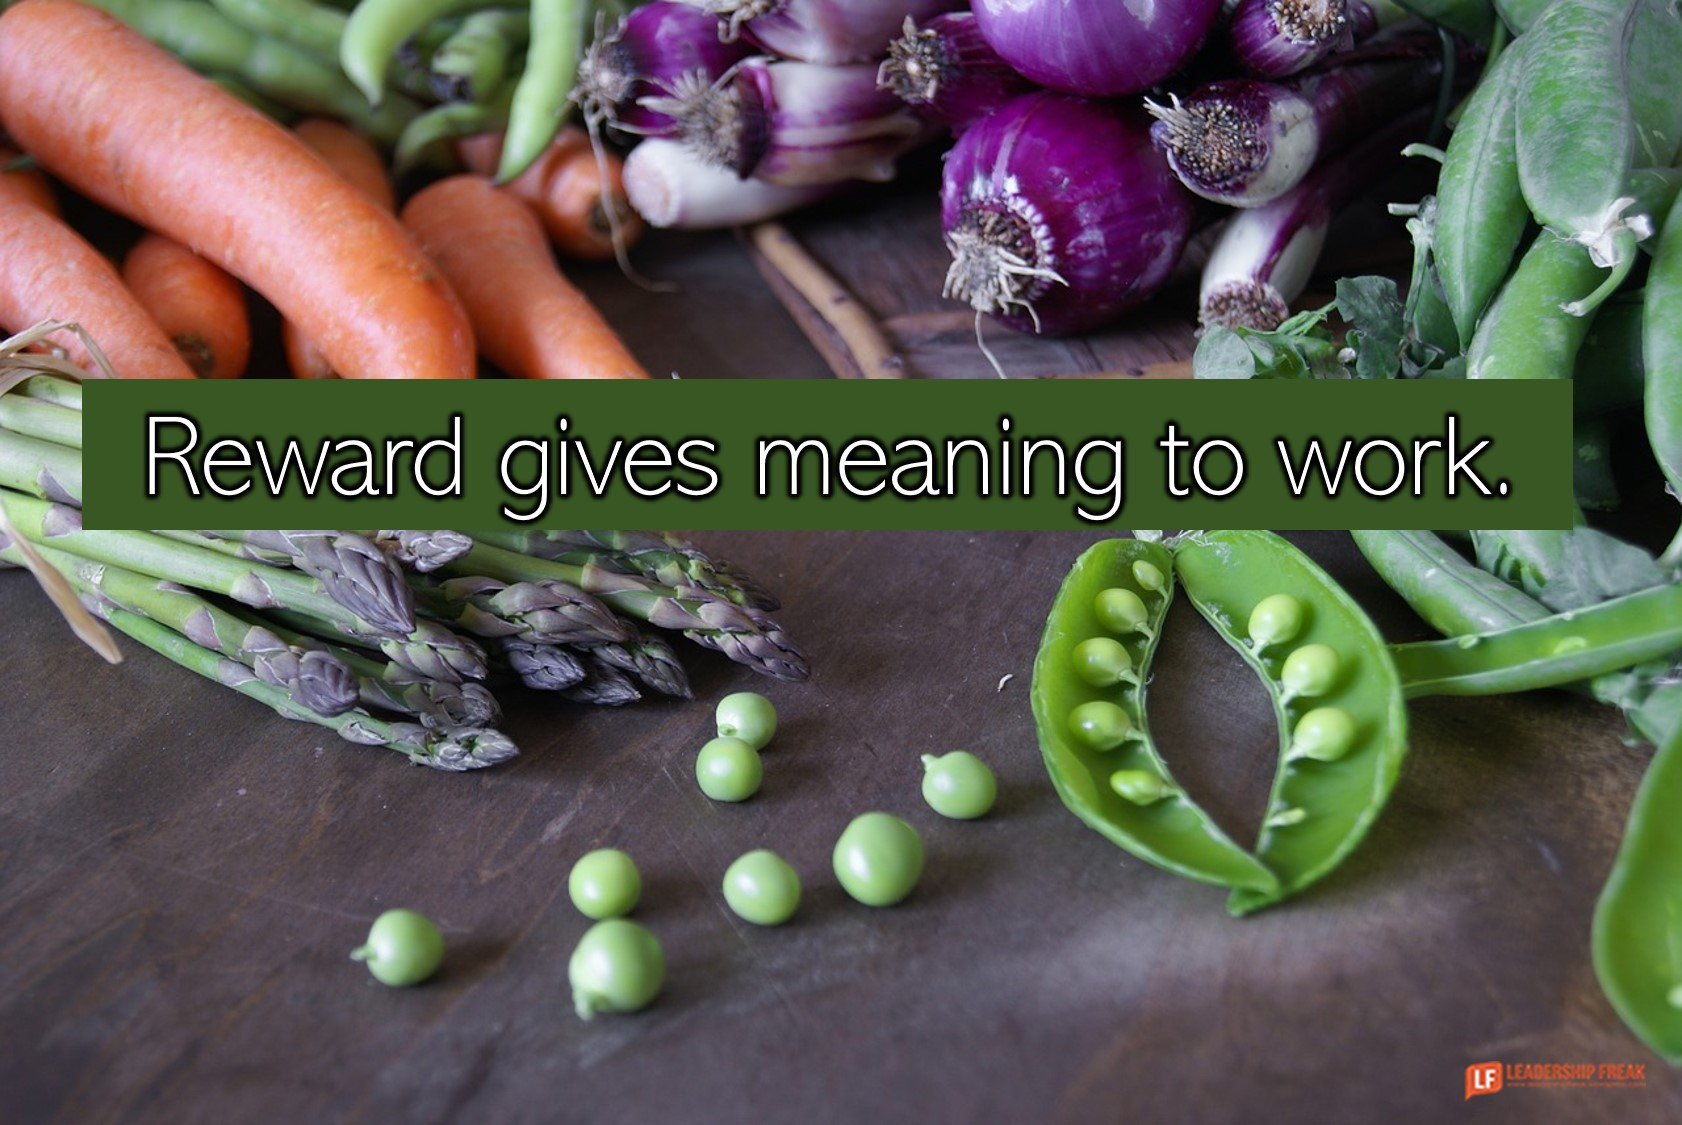 Vegetables  Don't sell all the peas. Eat some. Reward gives meaning to work.